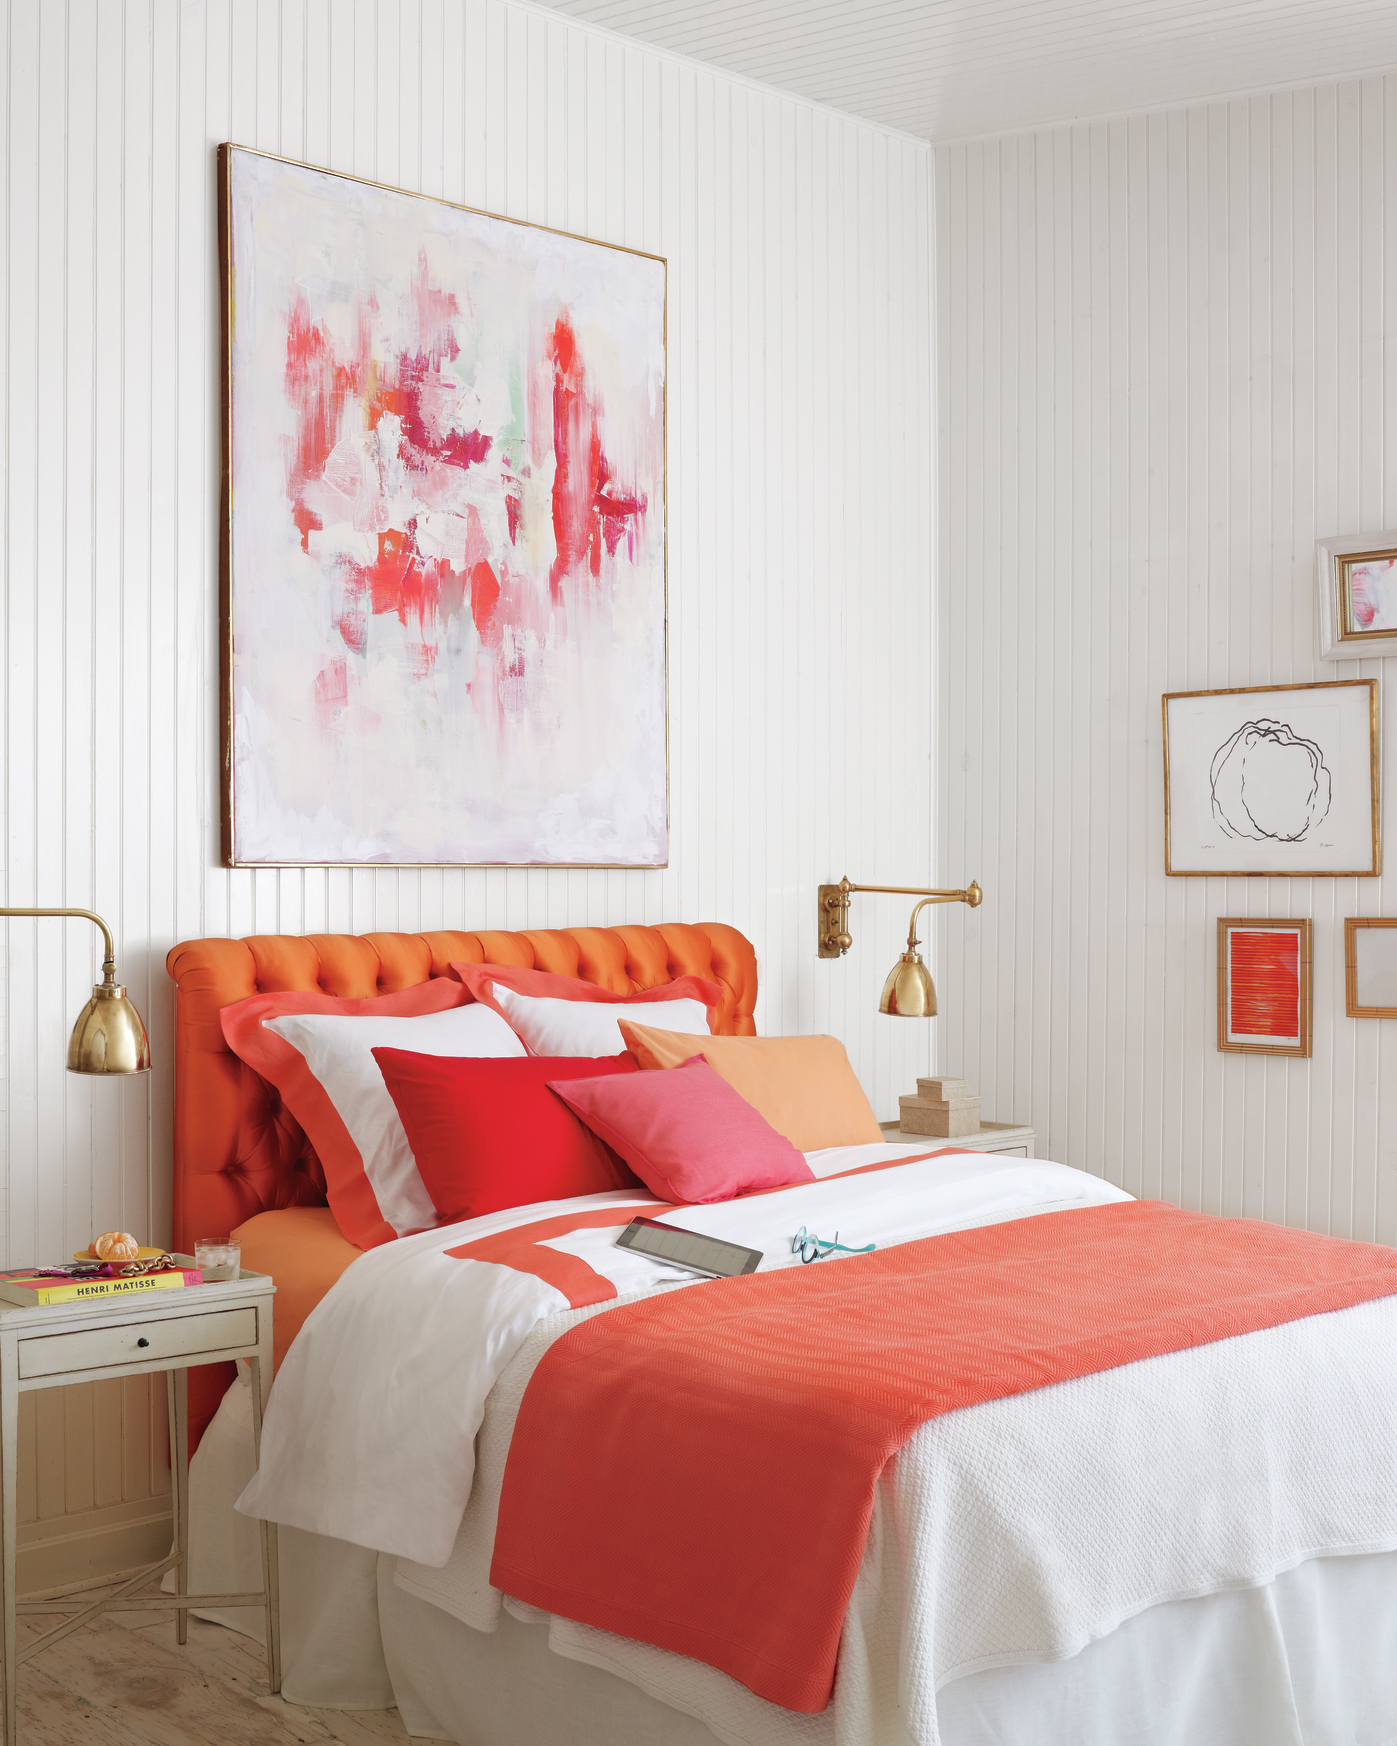 11 Diy Headboard Ideas To Give Your Bed A Boost Martha Stewart